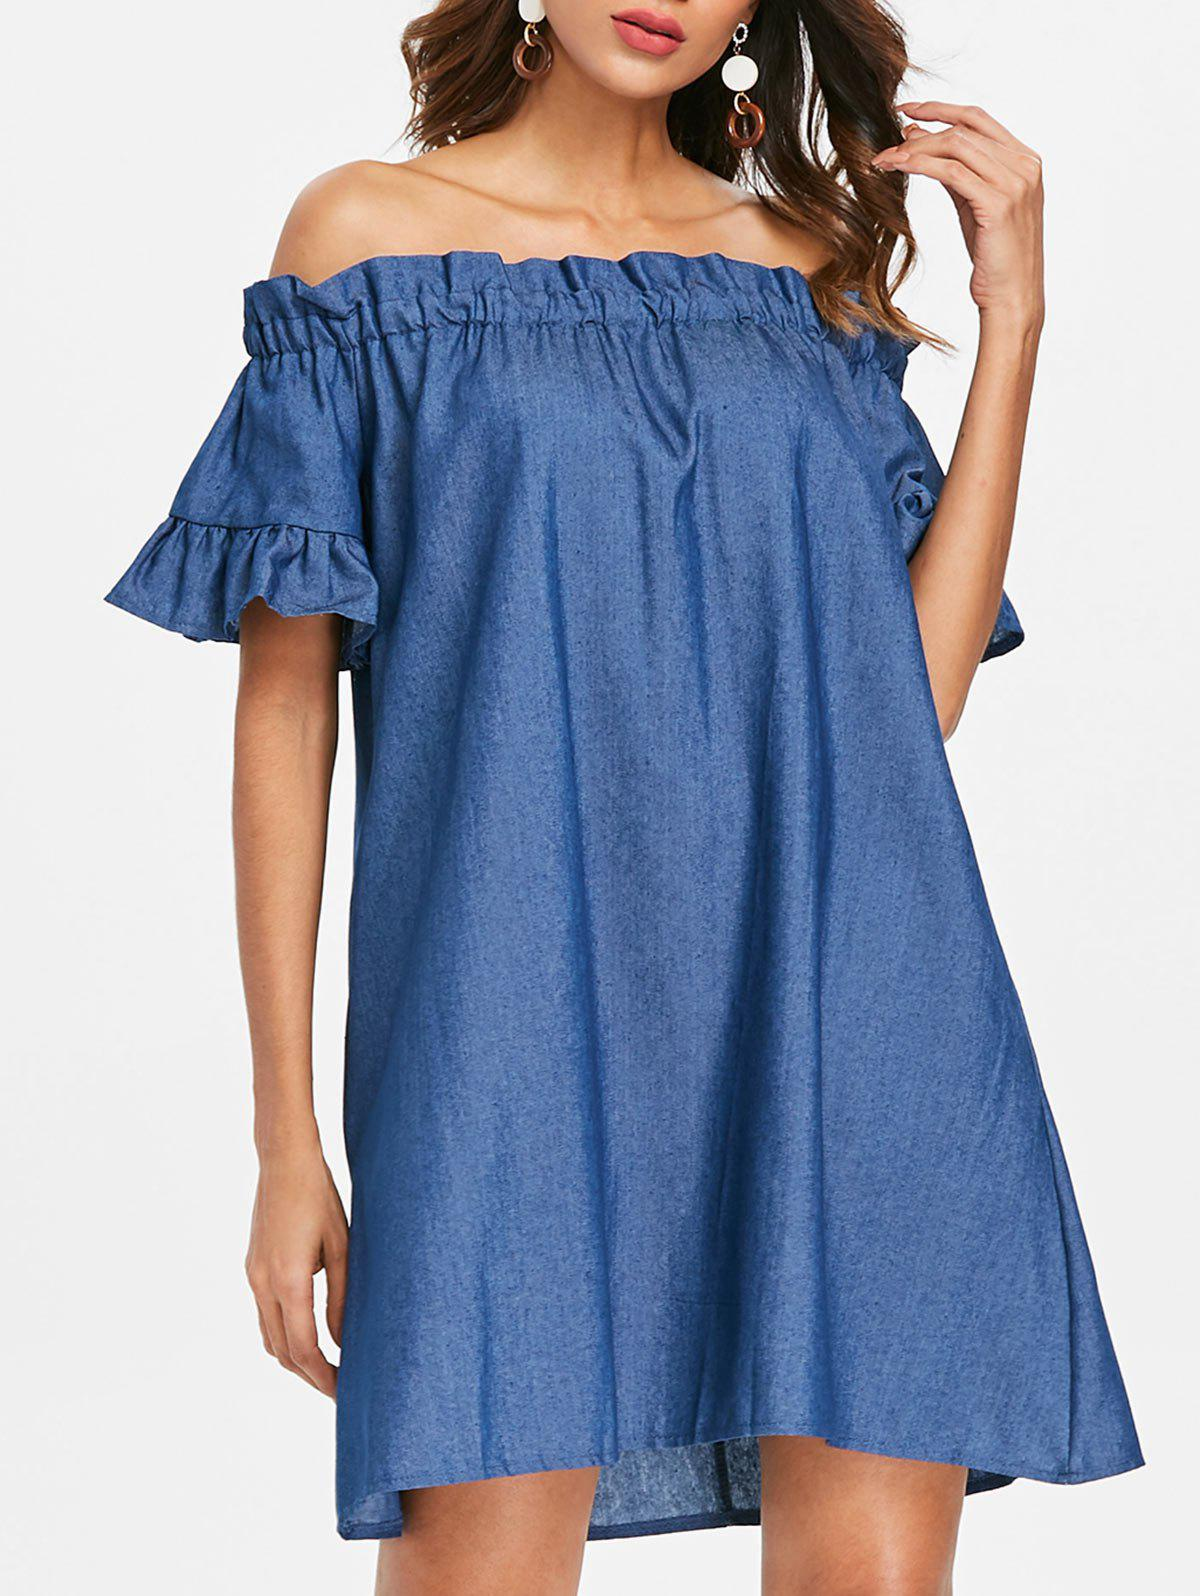 Flounce Trim Off The Shoulder Dress - DEEP BLUE XL